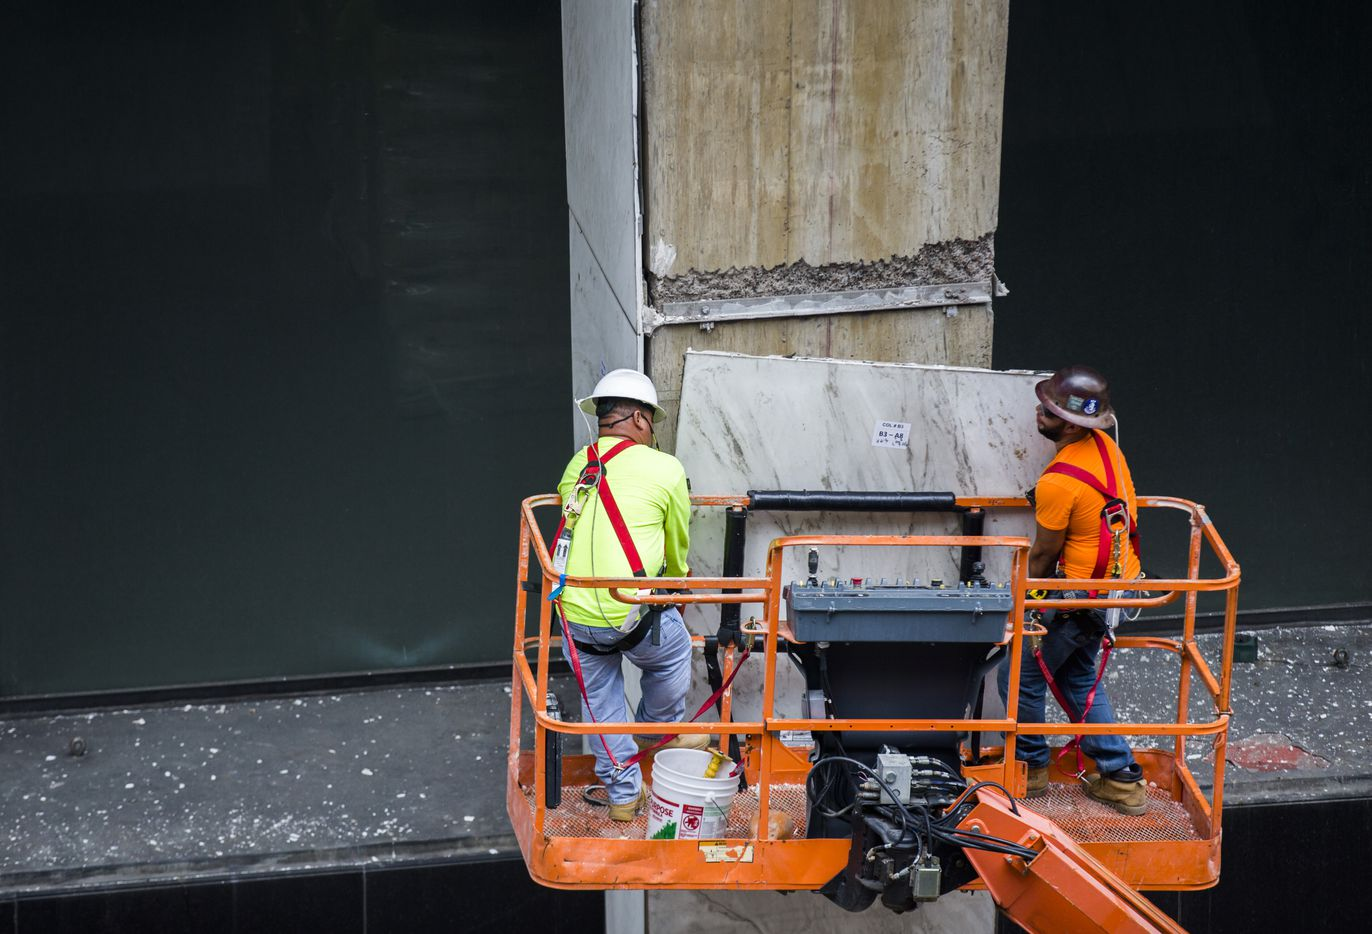 Workers remove panels of marble off of the First National Bank Tower as part of the renovation of the skyscraper.